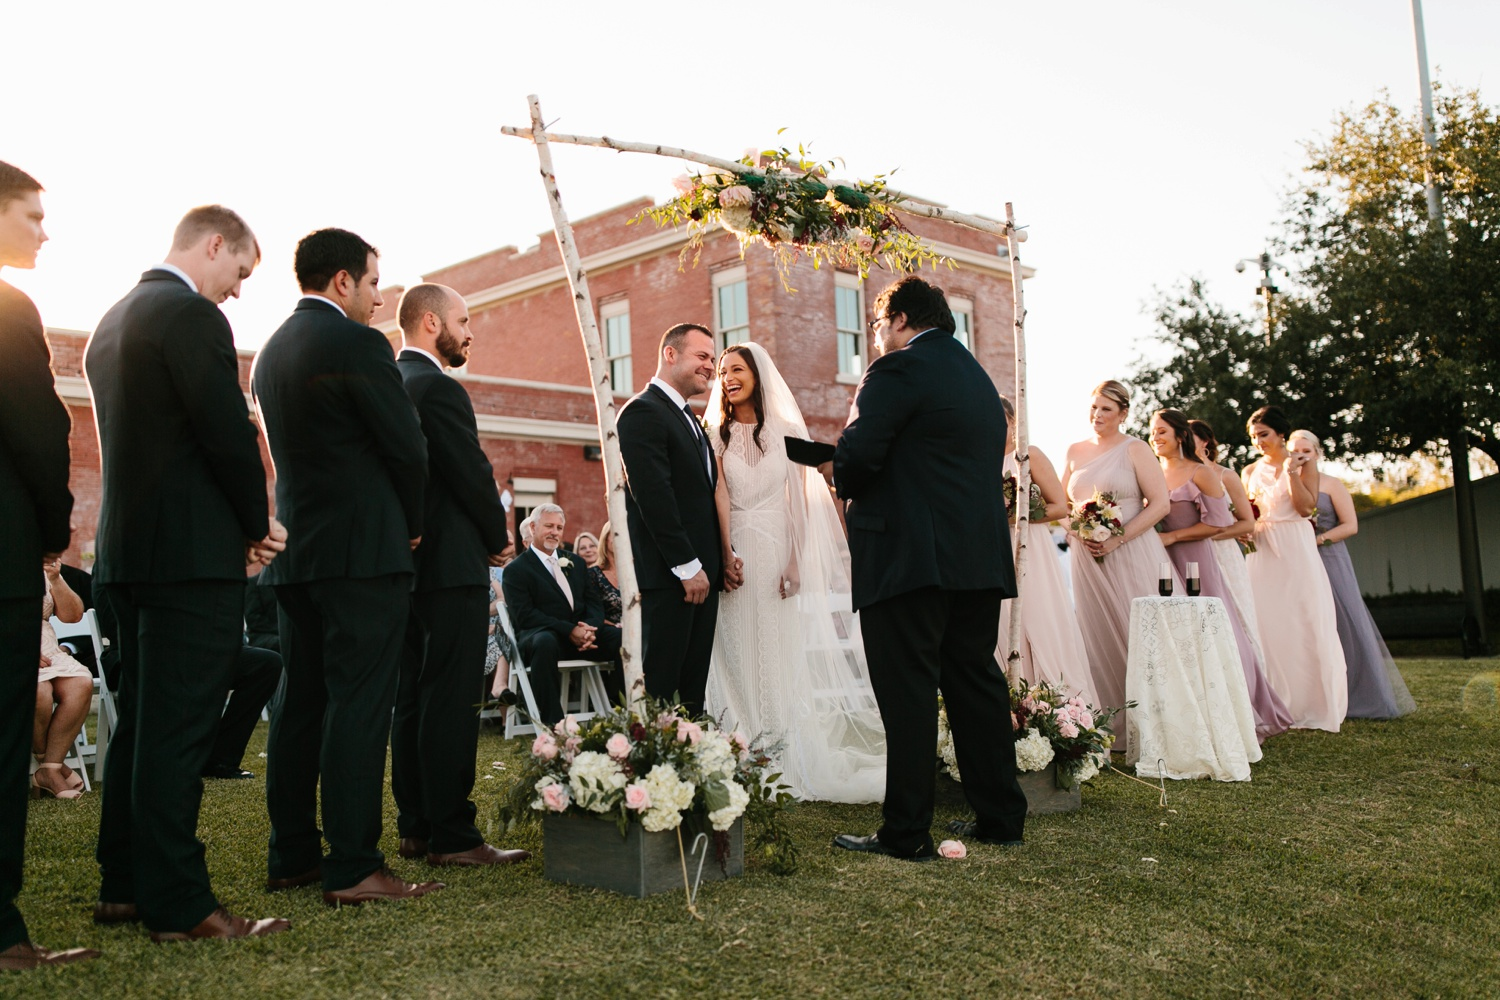 Kadee + Tyler | a raw, emotional wedding at the Filter Building on White Rock Lake in Dallas, TX by North Texas Wedding Photographer, Rachel Meagan Photography 138